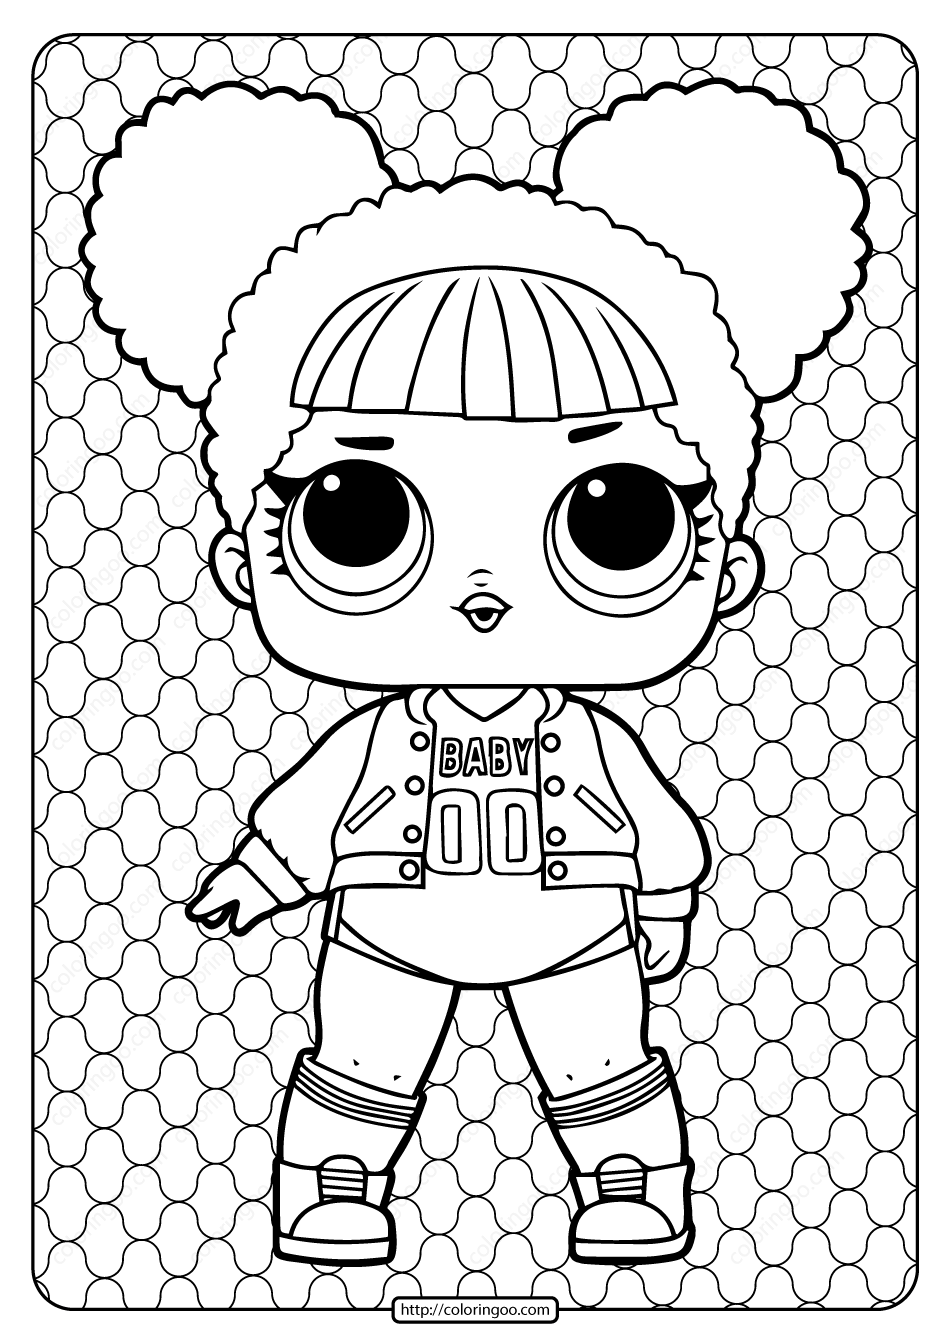 Printable Lol Surprise Hoops Mvp Coloring Book